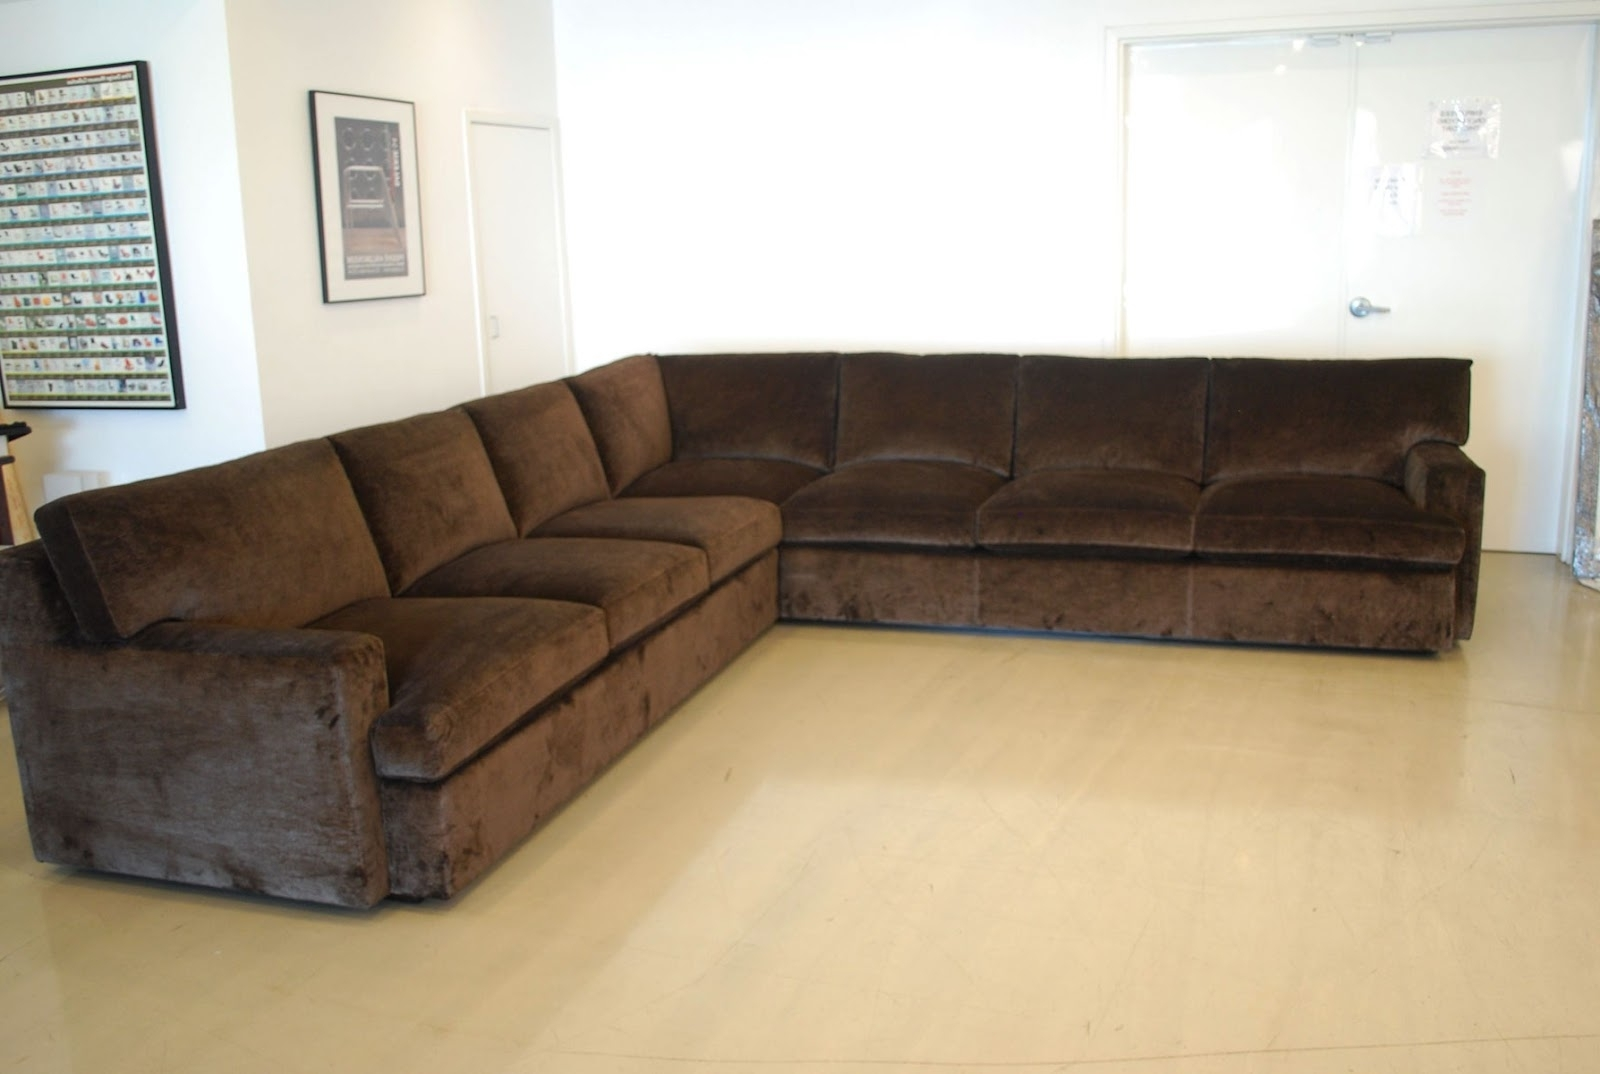 Fashionable Customizable Sectional Sofas Regarding Best Custom Sectional Sofa 15 On Contemporary Sofa Inspiration (View 11 of 20)